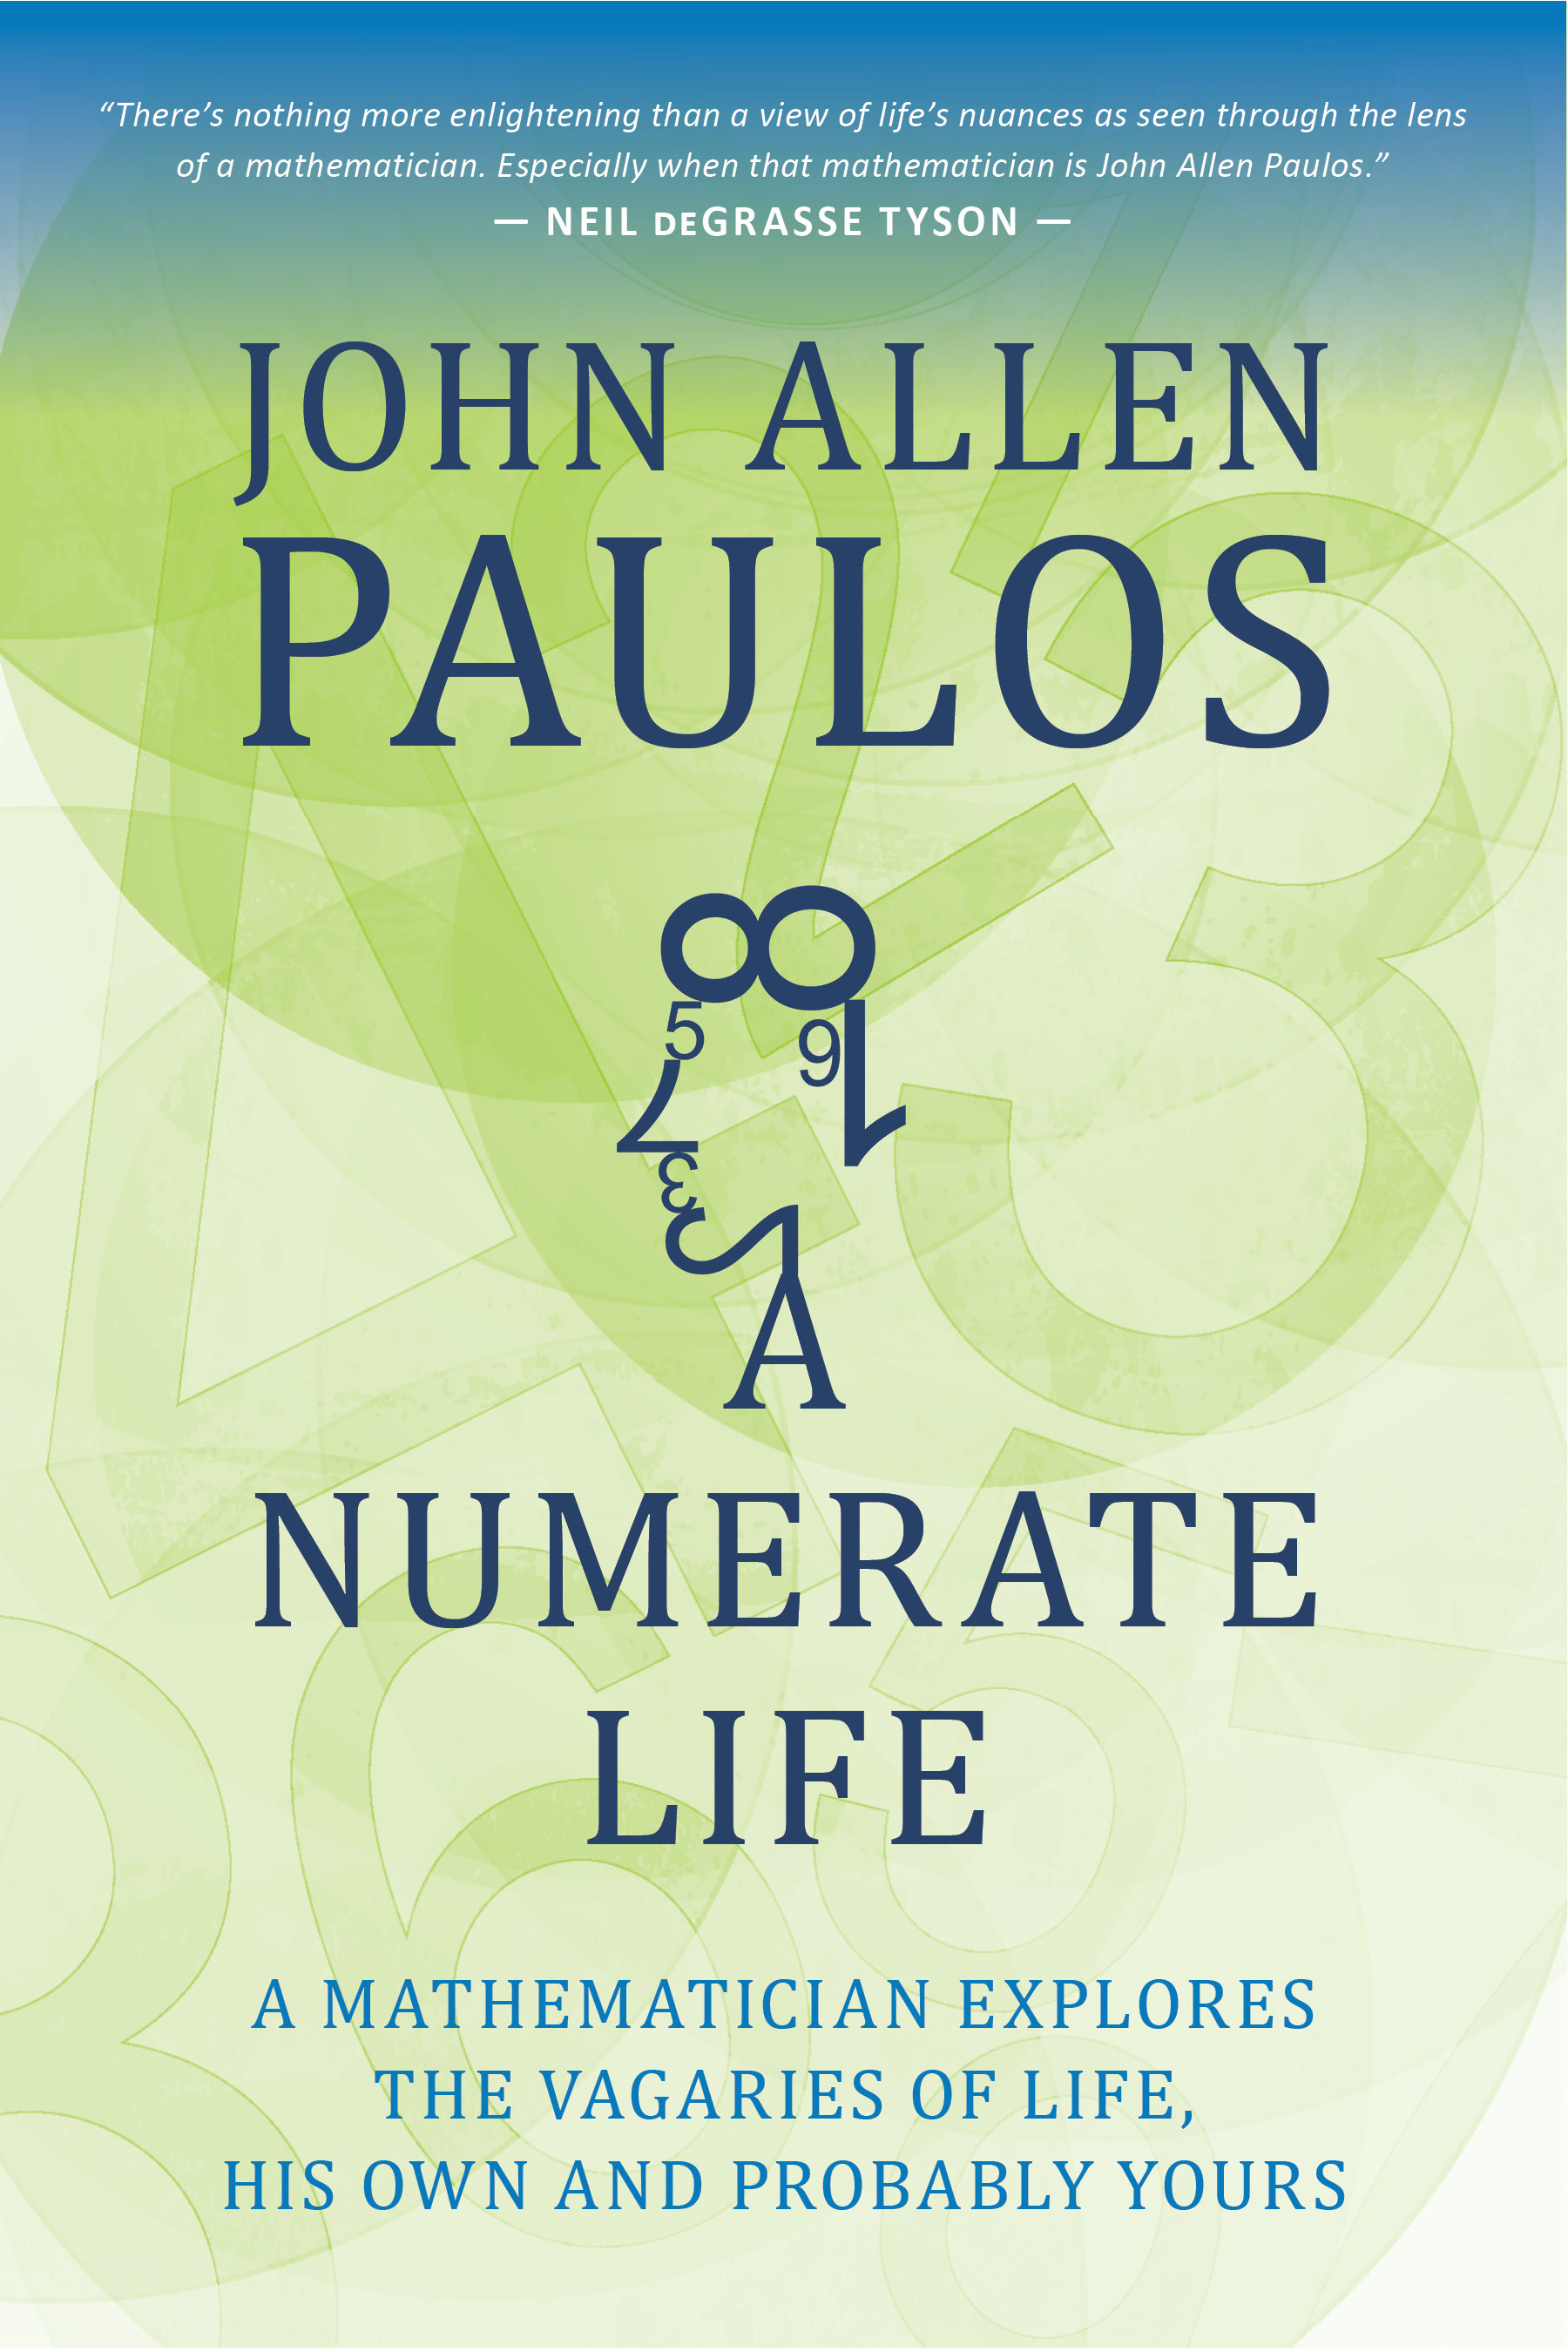 A Numerate Life: A Mathematician Explores the Vagaries of Life, His Own and Probably Yours  by  John Allen Paulos